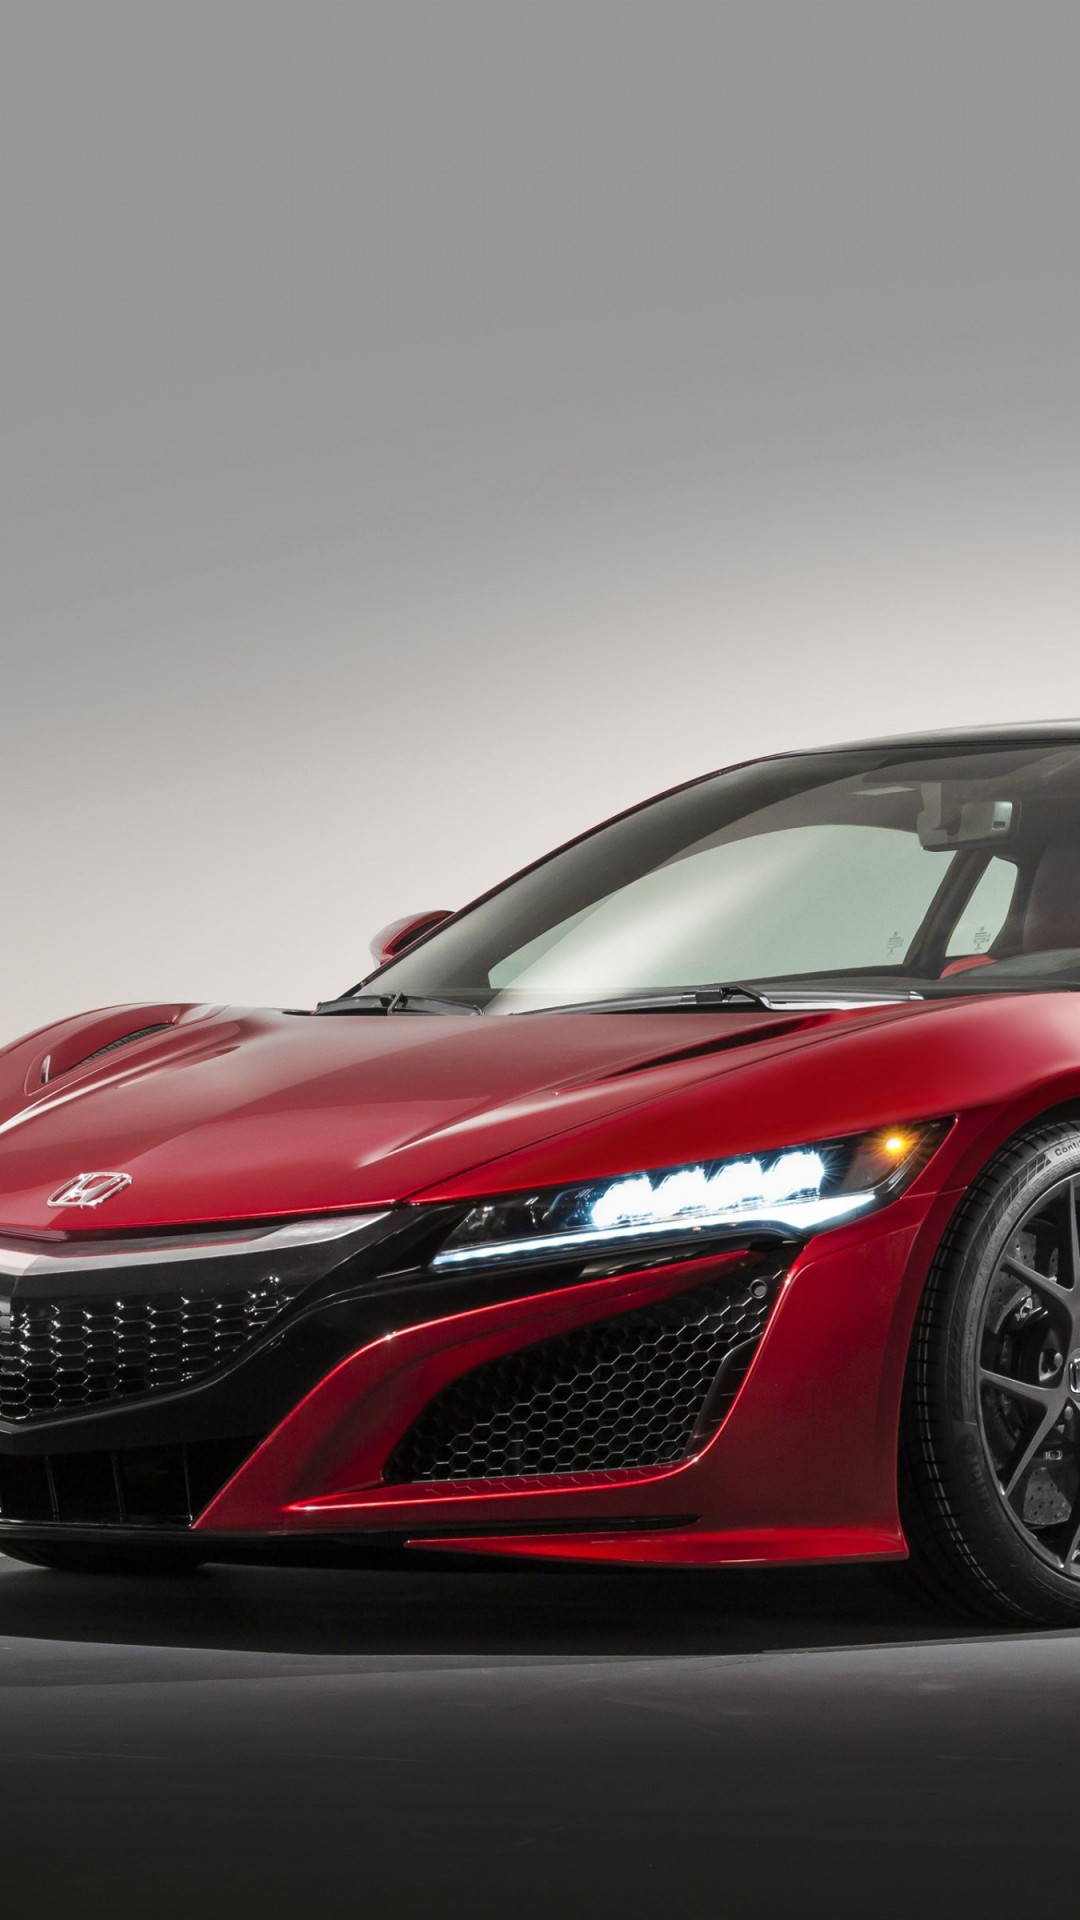 Honda NSX 2015 Wallpaper for SONY Xperia Z3